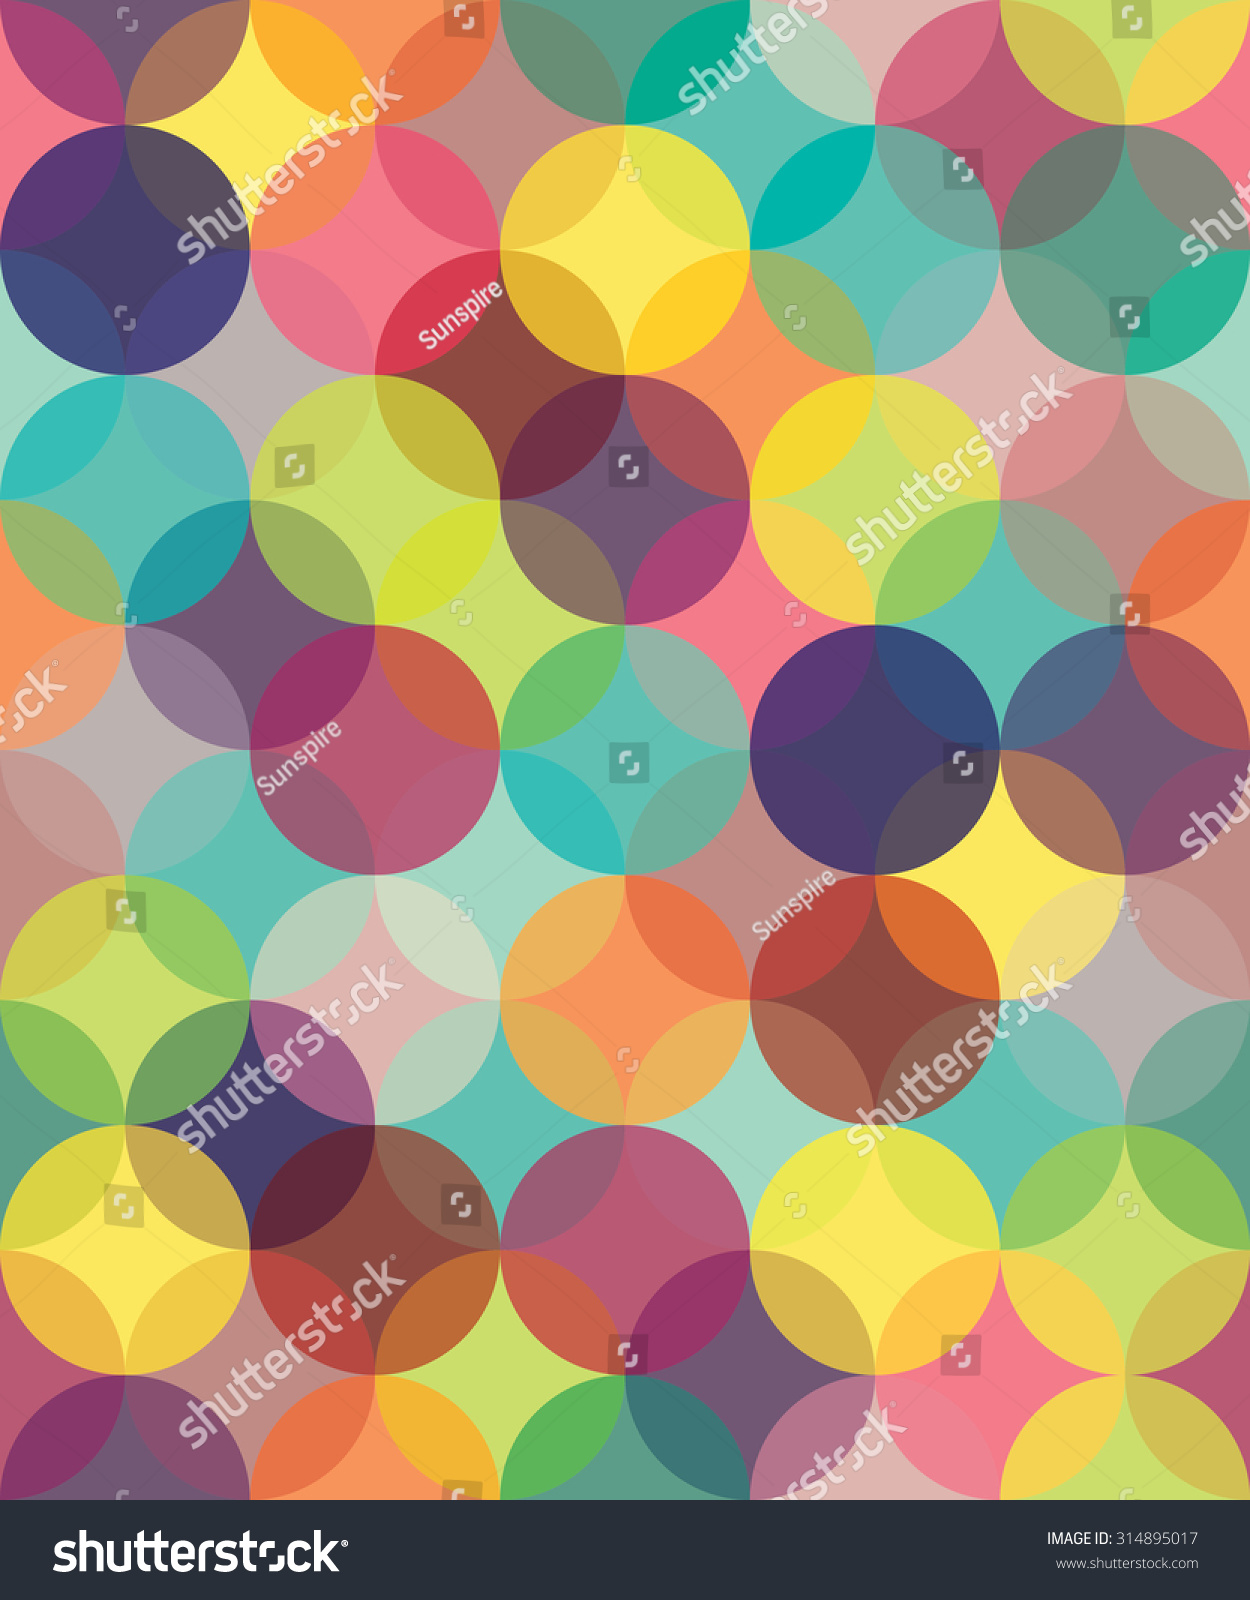 Brown bed sheet textures - Vector Modern Seamless Colorful Vintage Pattern Overlapping Circles Colored Background Textile Print Abstract